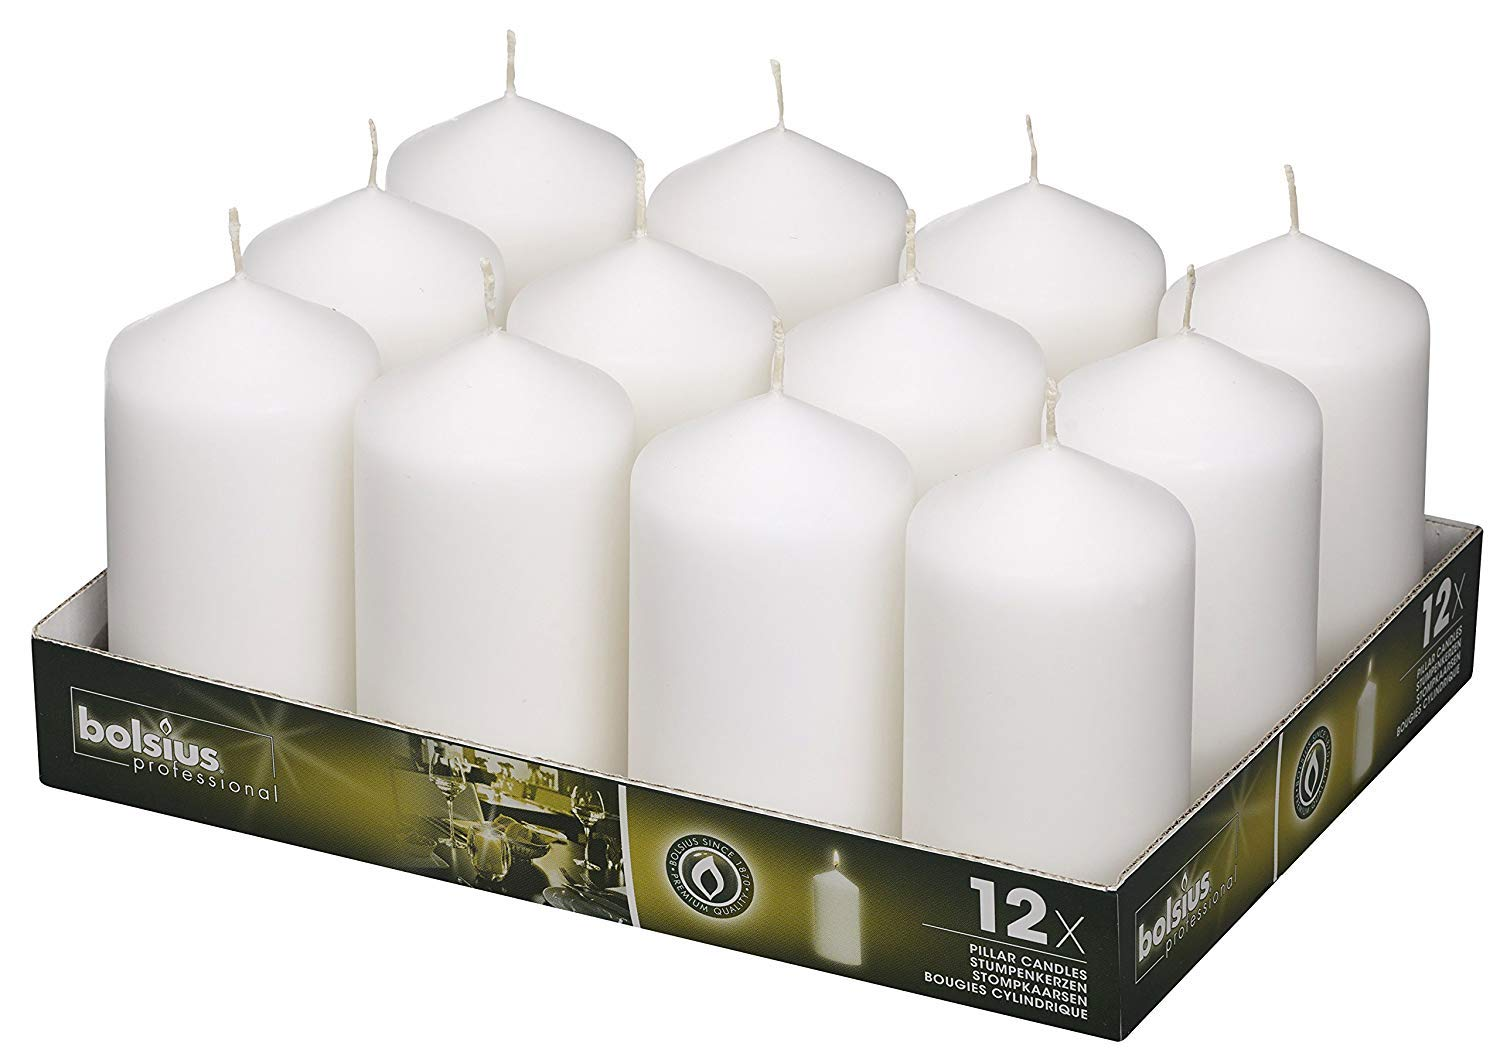 BOLSIUS White Pillar Candles - 12 Pack 40 Long Burning Hours Candle Set - 5-inch x 2.75-inch Dripless Candle - Perfect for Wedding Candles, Parties and Special Occasions